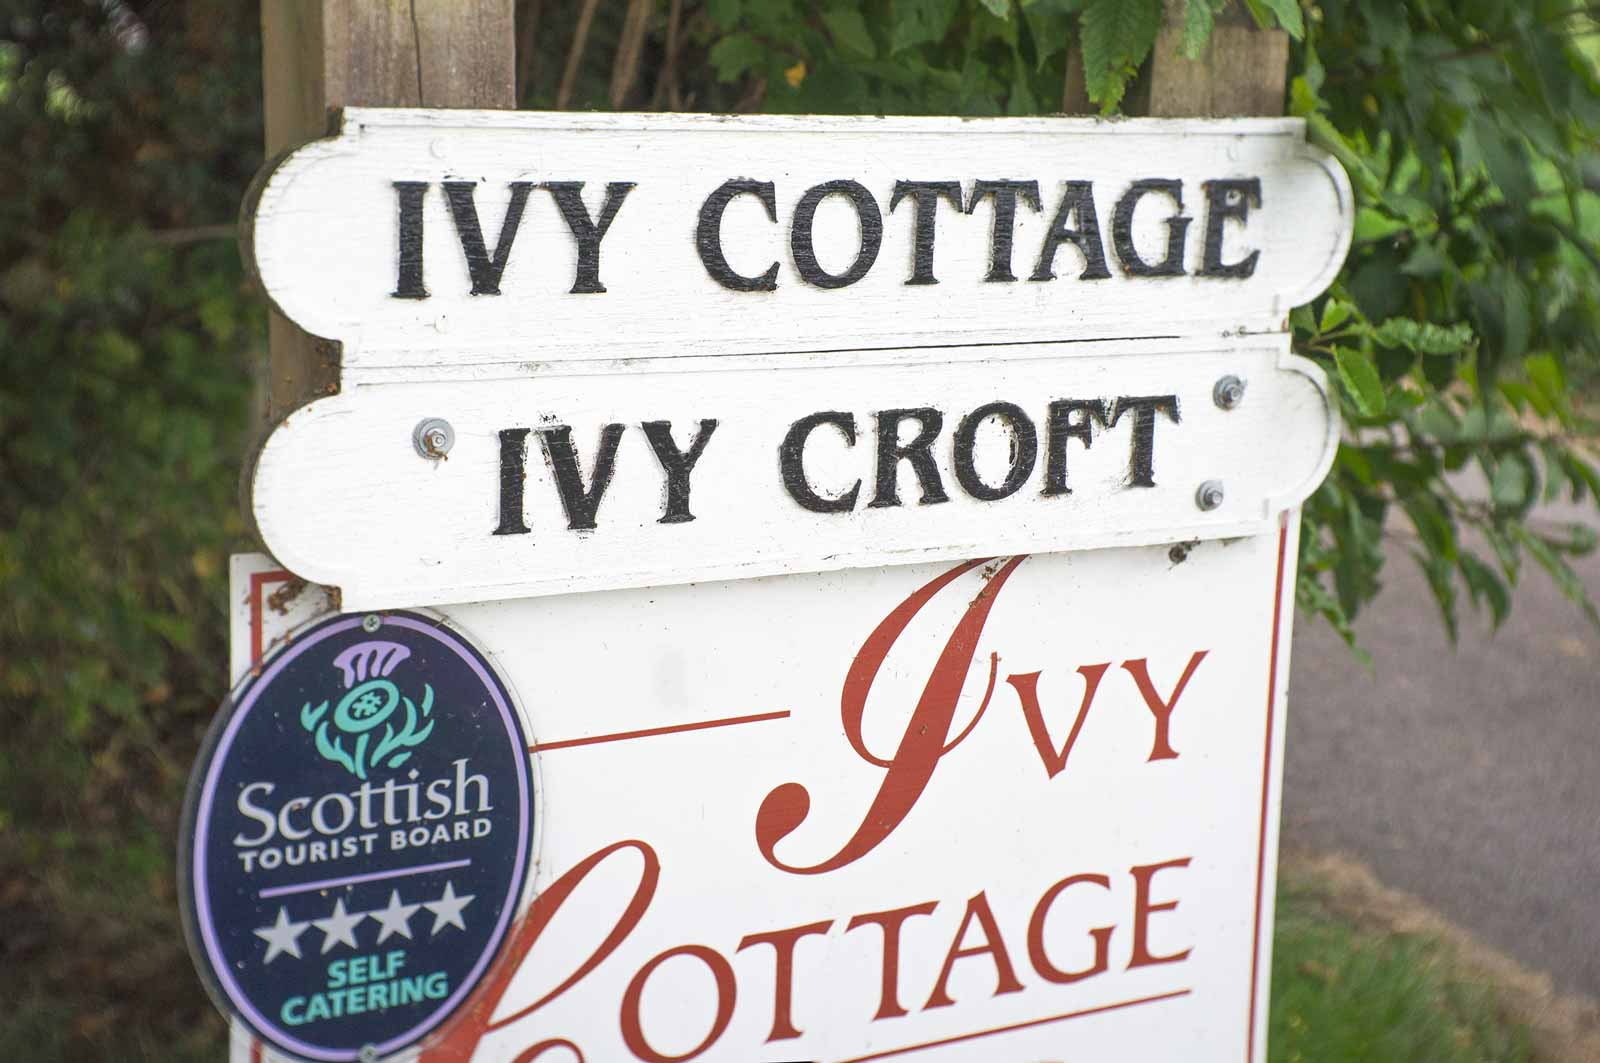 Ivy Cottage Strathpeffer sign